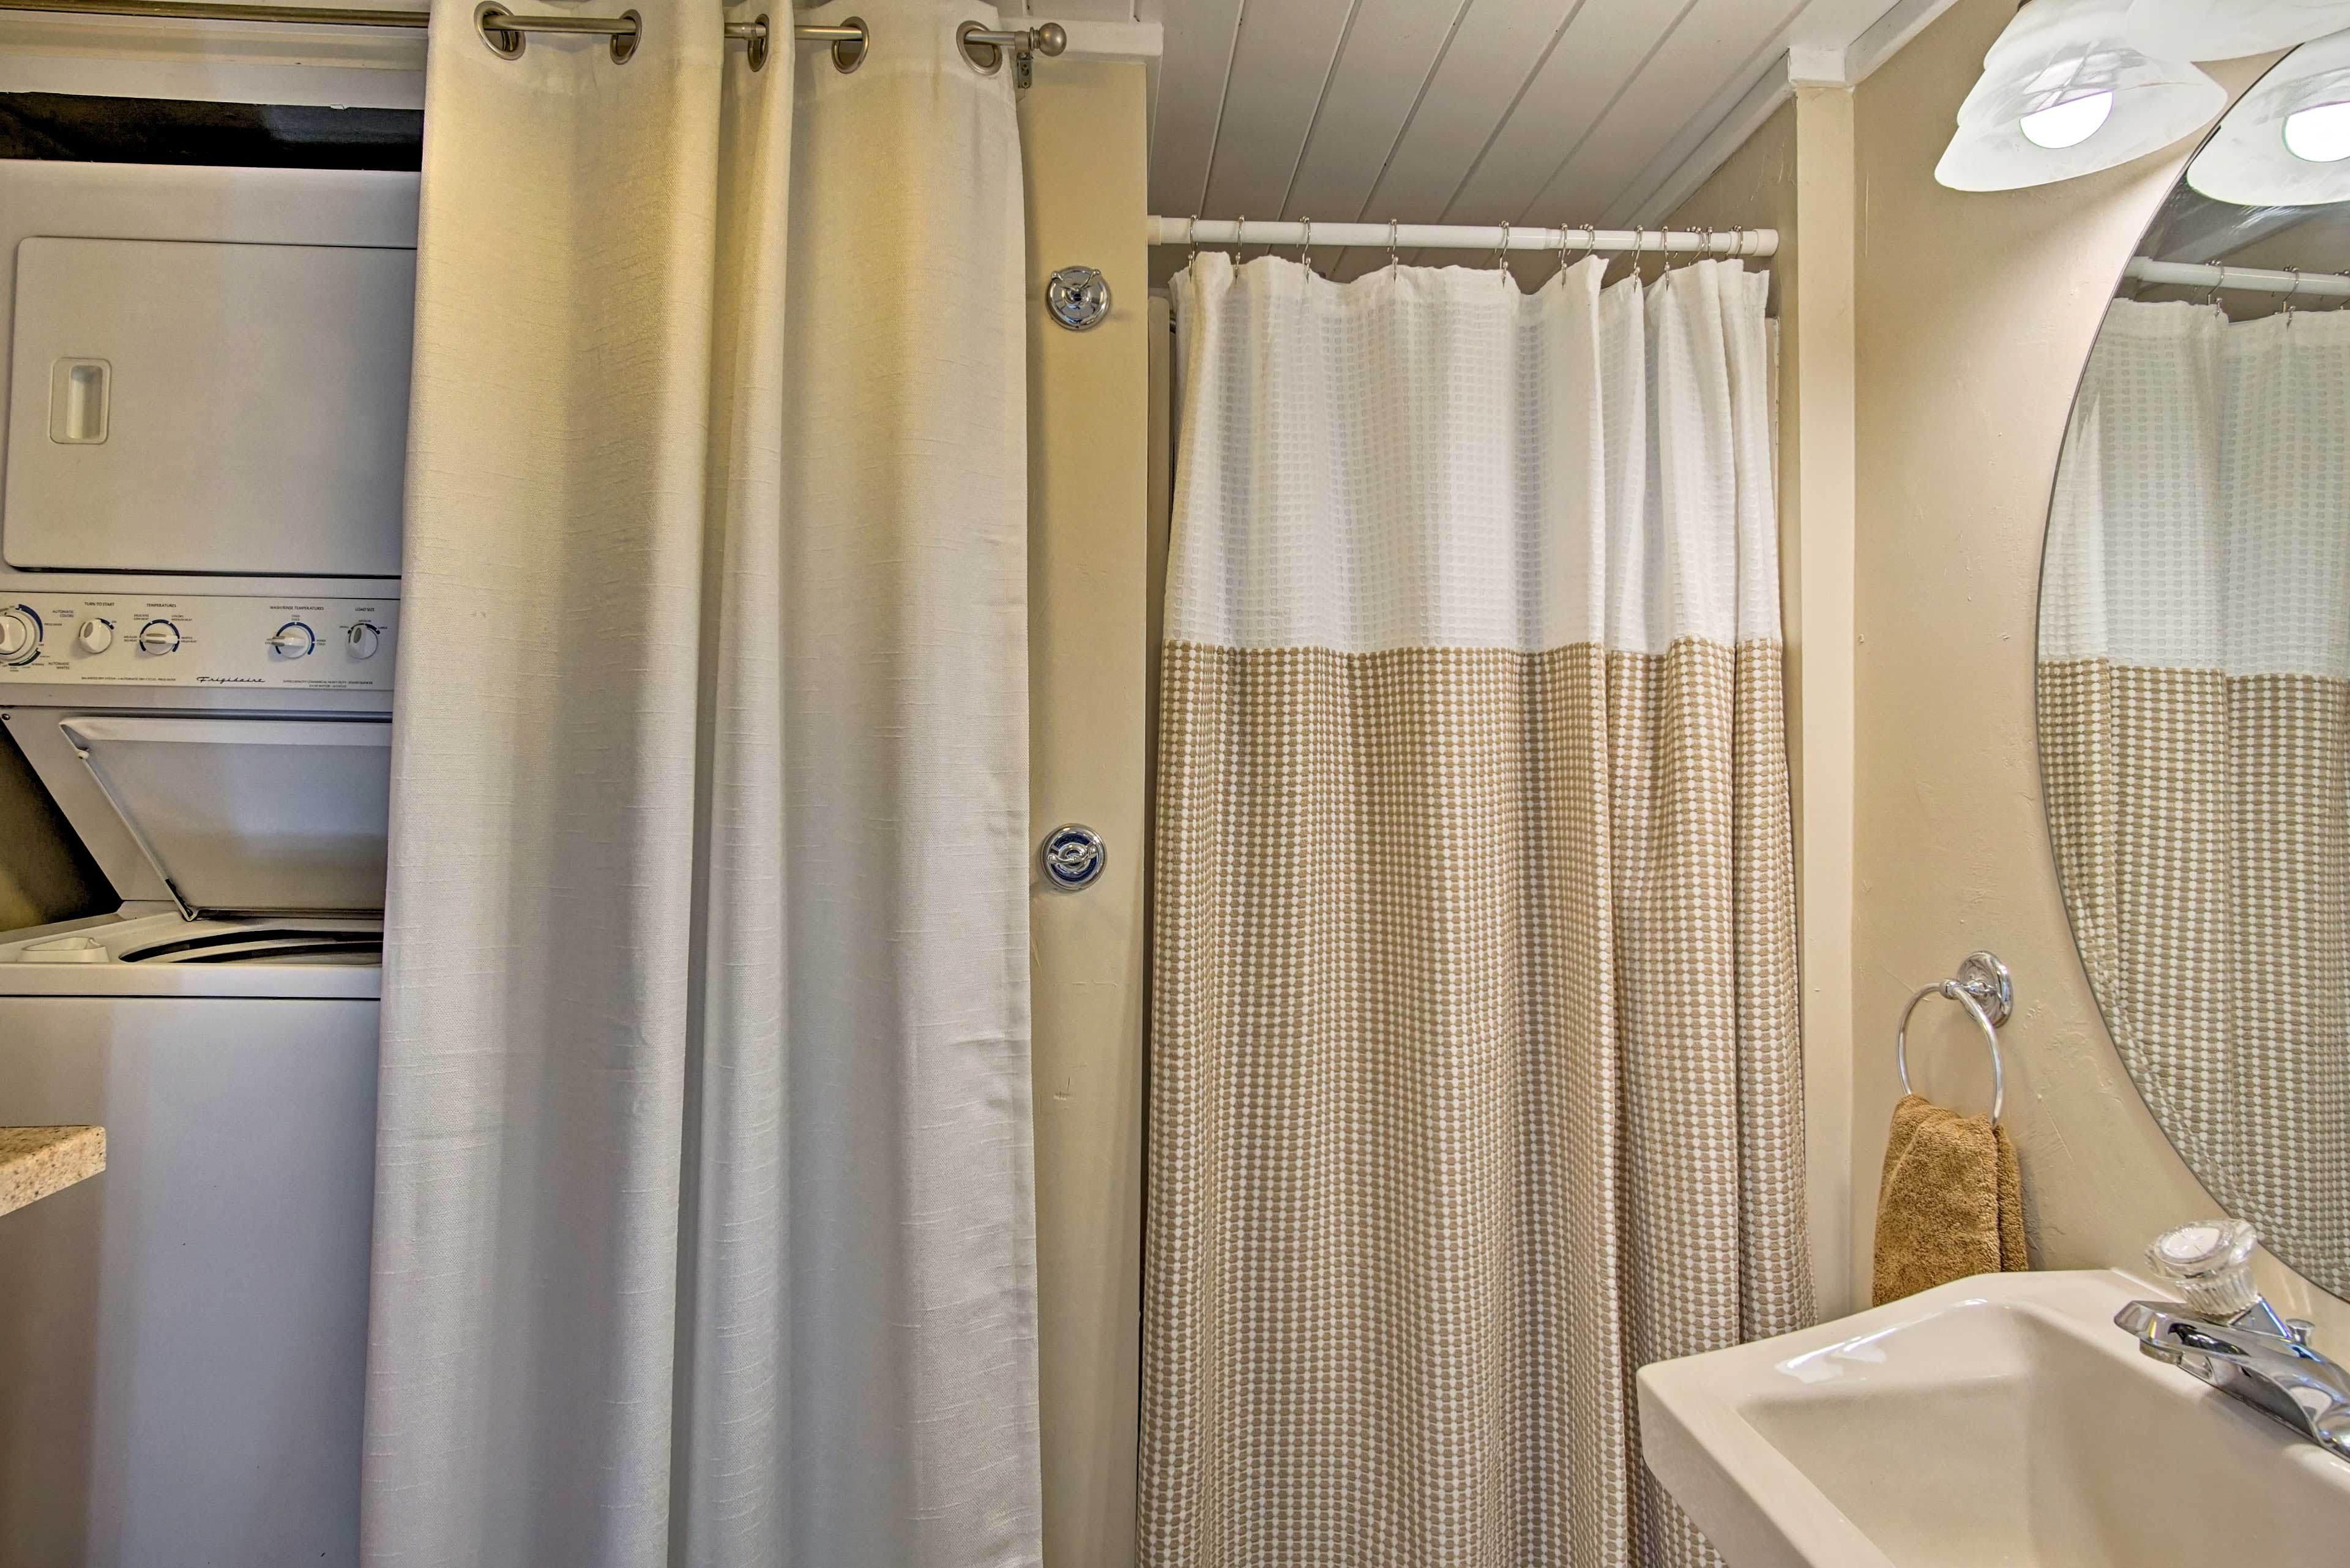 The in-unit laundry machines are located in the bathroom.